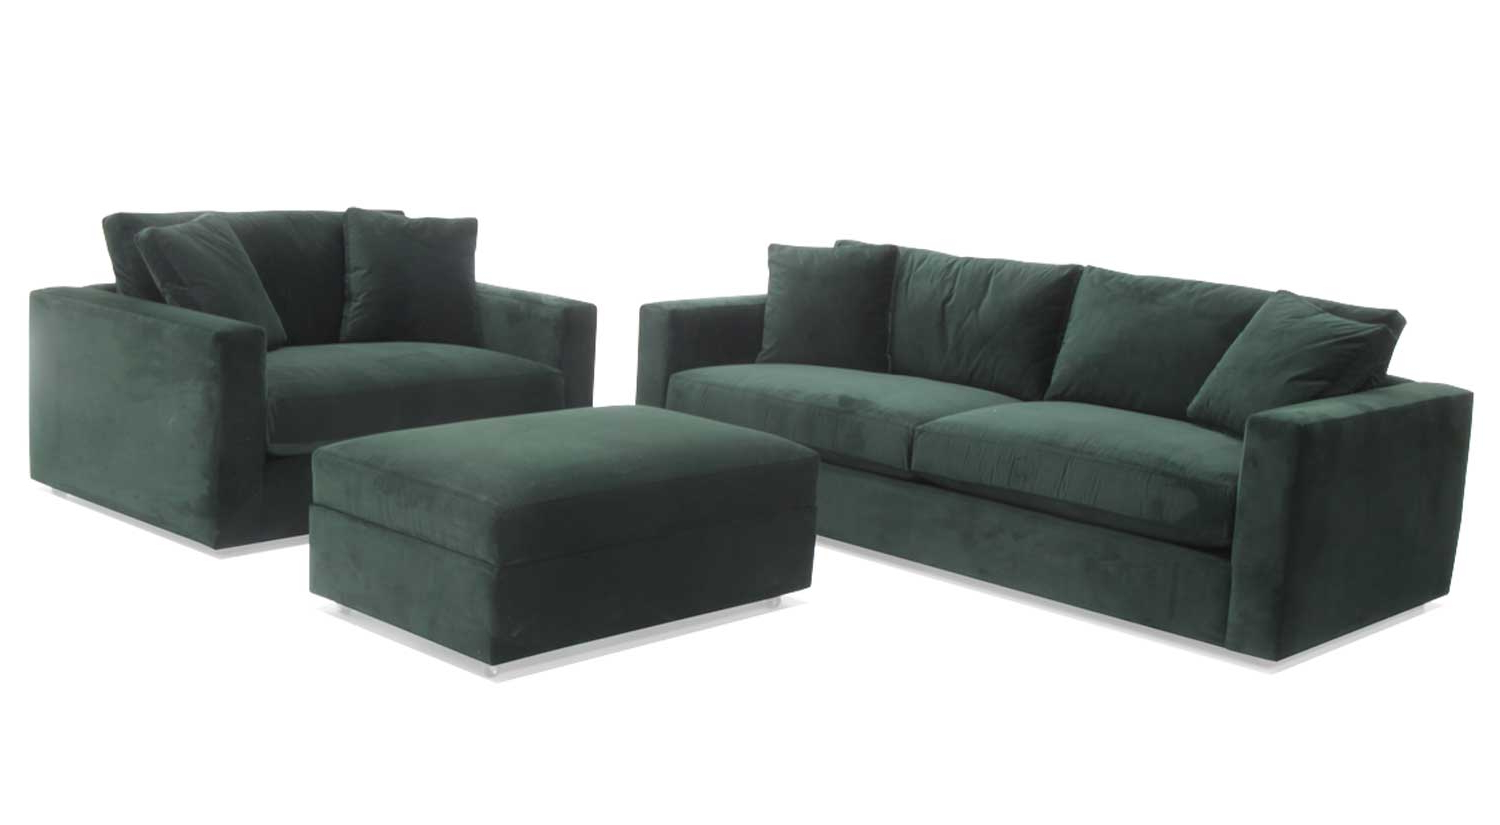 Widely Used Circle Furniture – Putnam Sofa (View 9 of 20)